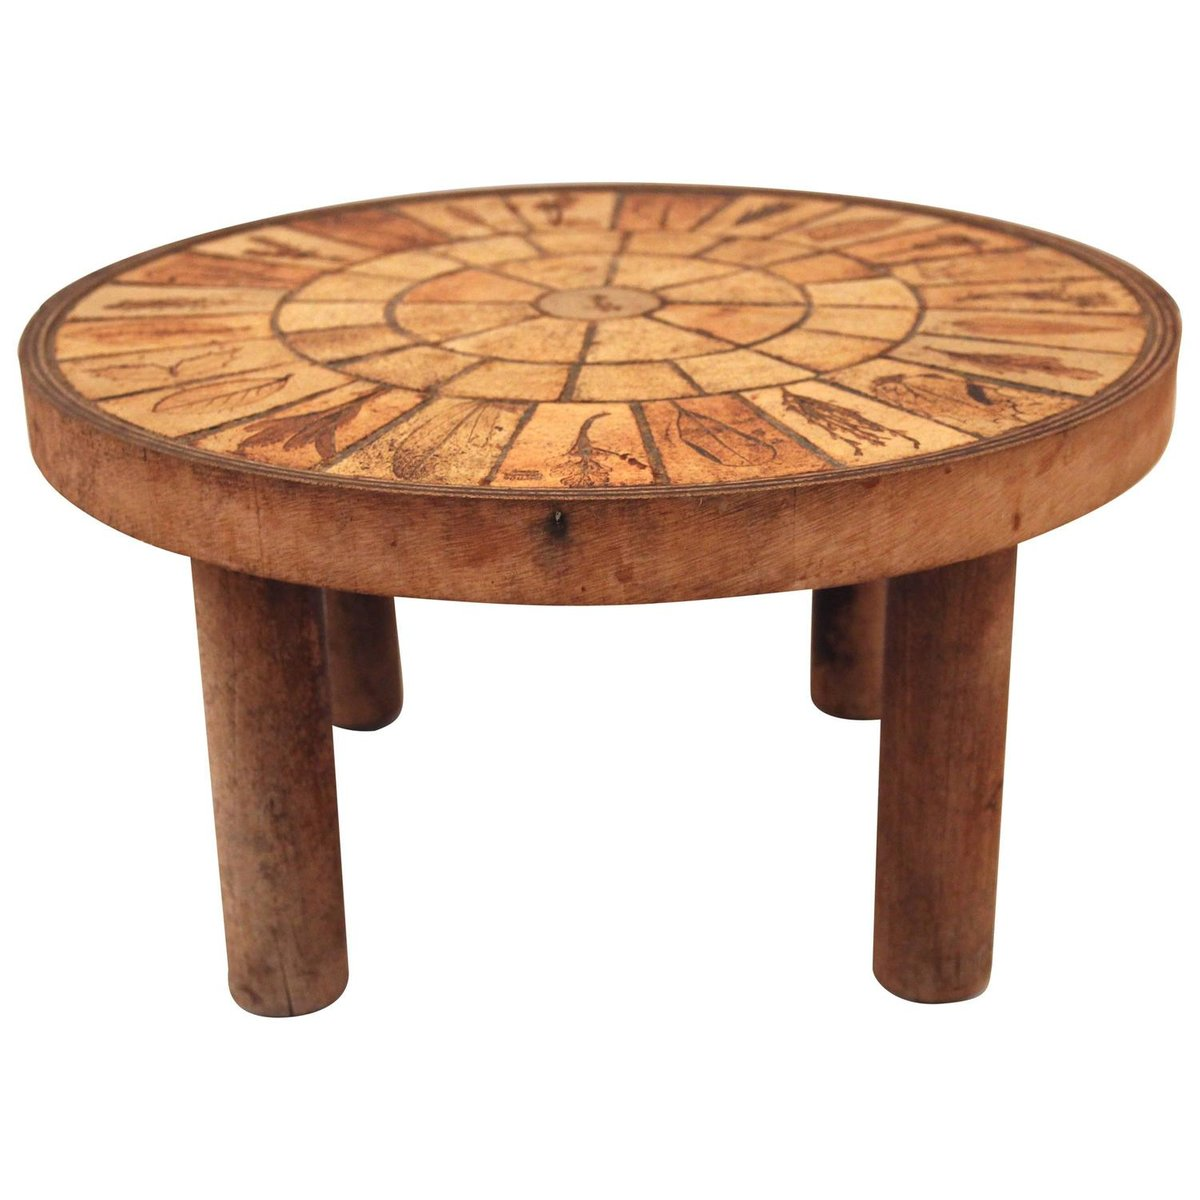 French Wood Coffee Table: French Ceramic & Wooden Coffee Table By Roger Capron